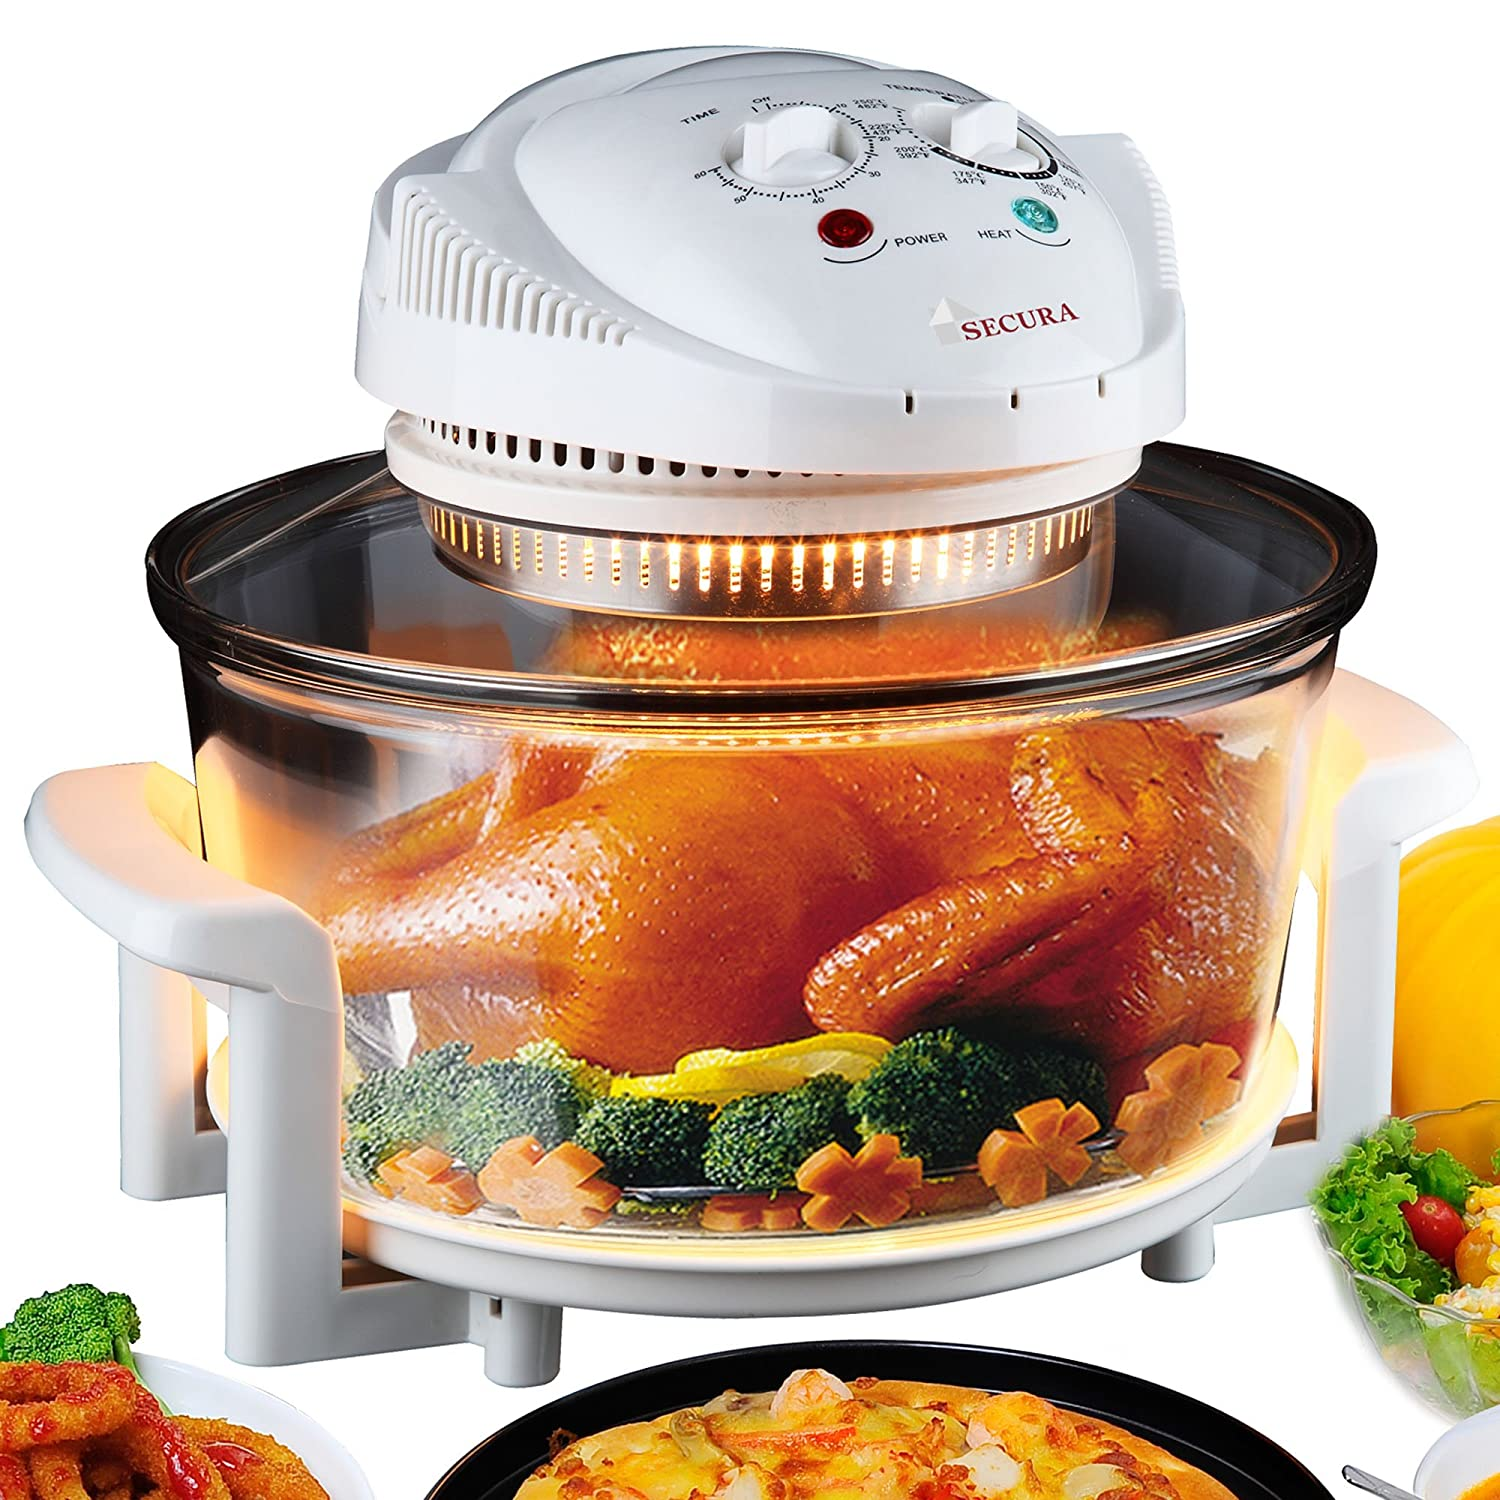 Countertop Convection Oven Rotisserie Halogen Toaster Infrared Cooking ...